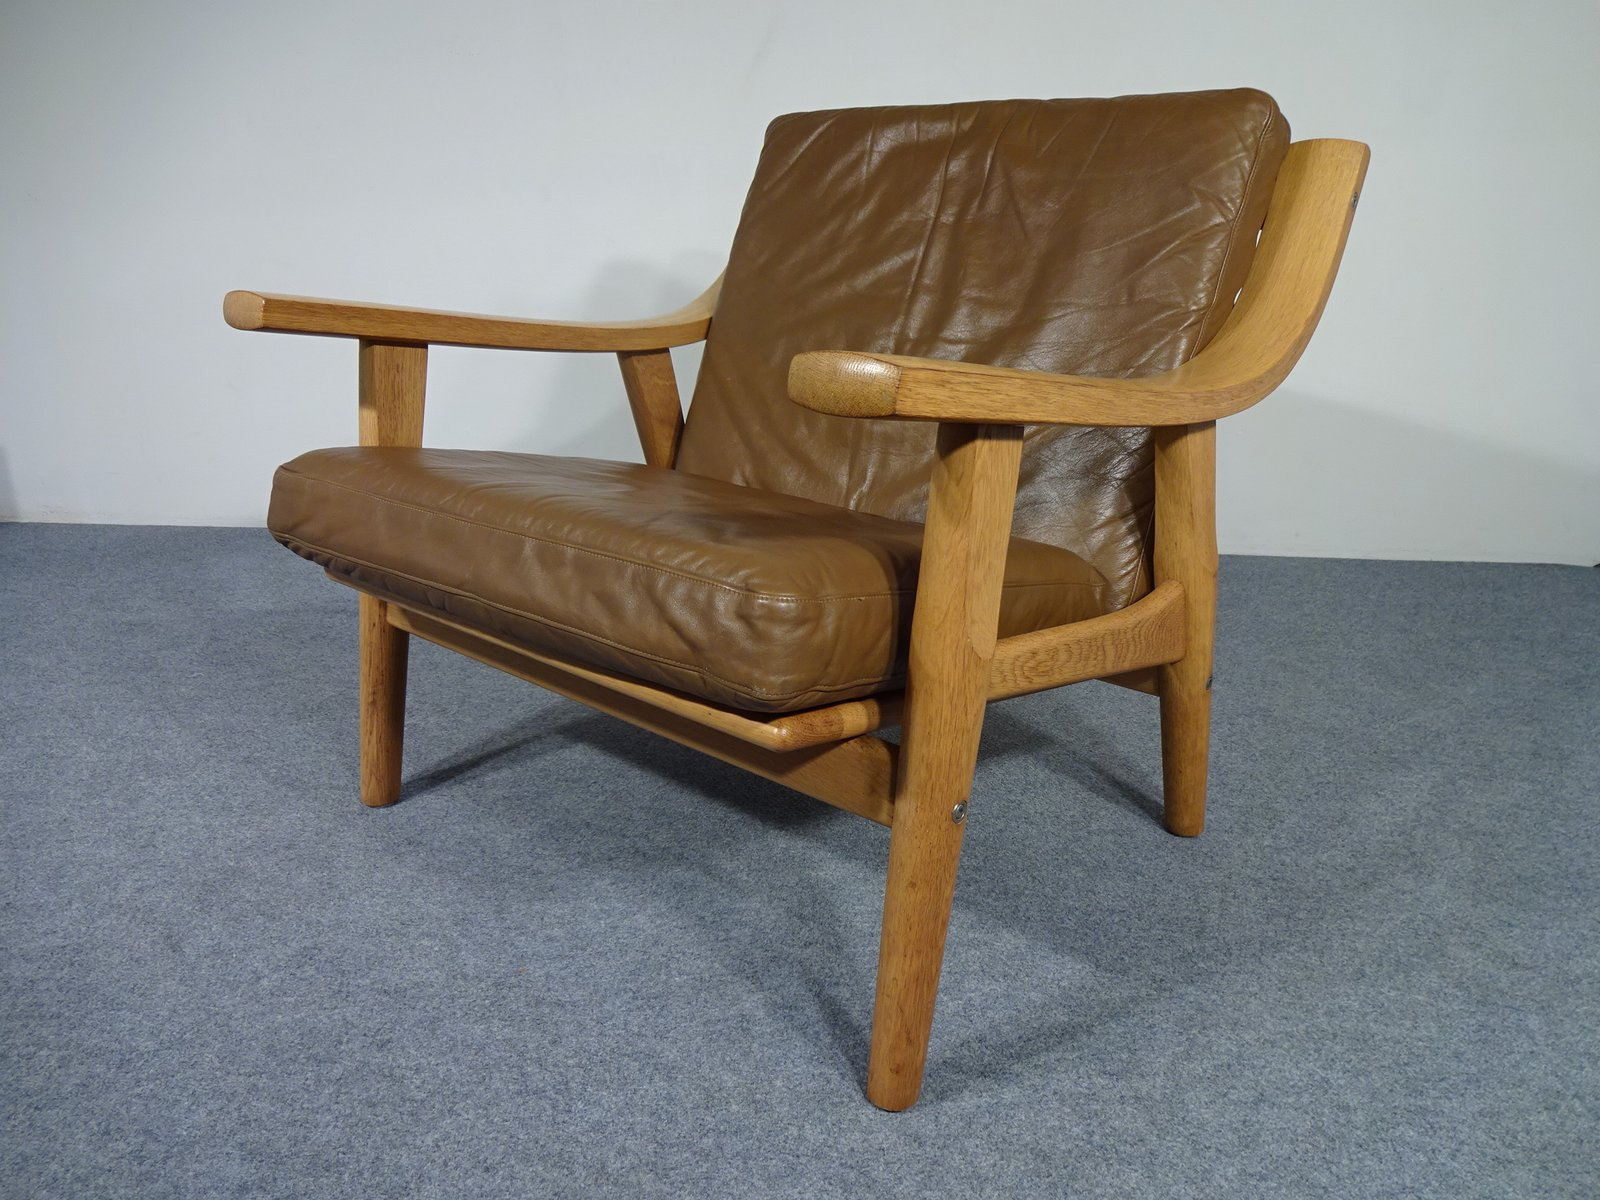 GE 530 Chair by Hans J Wegner for Getama 1960s for sale at Pamono